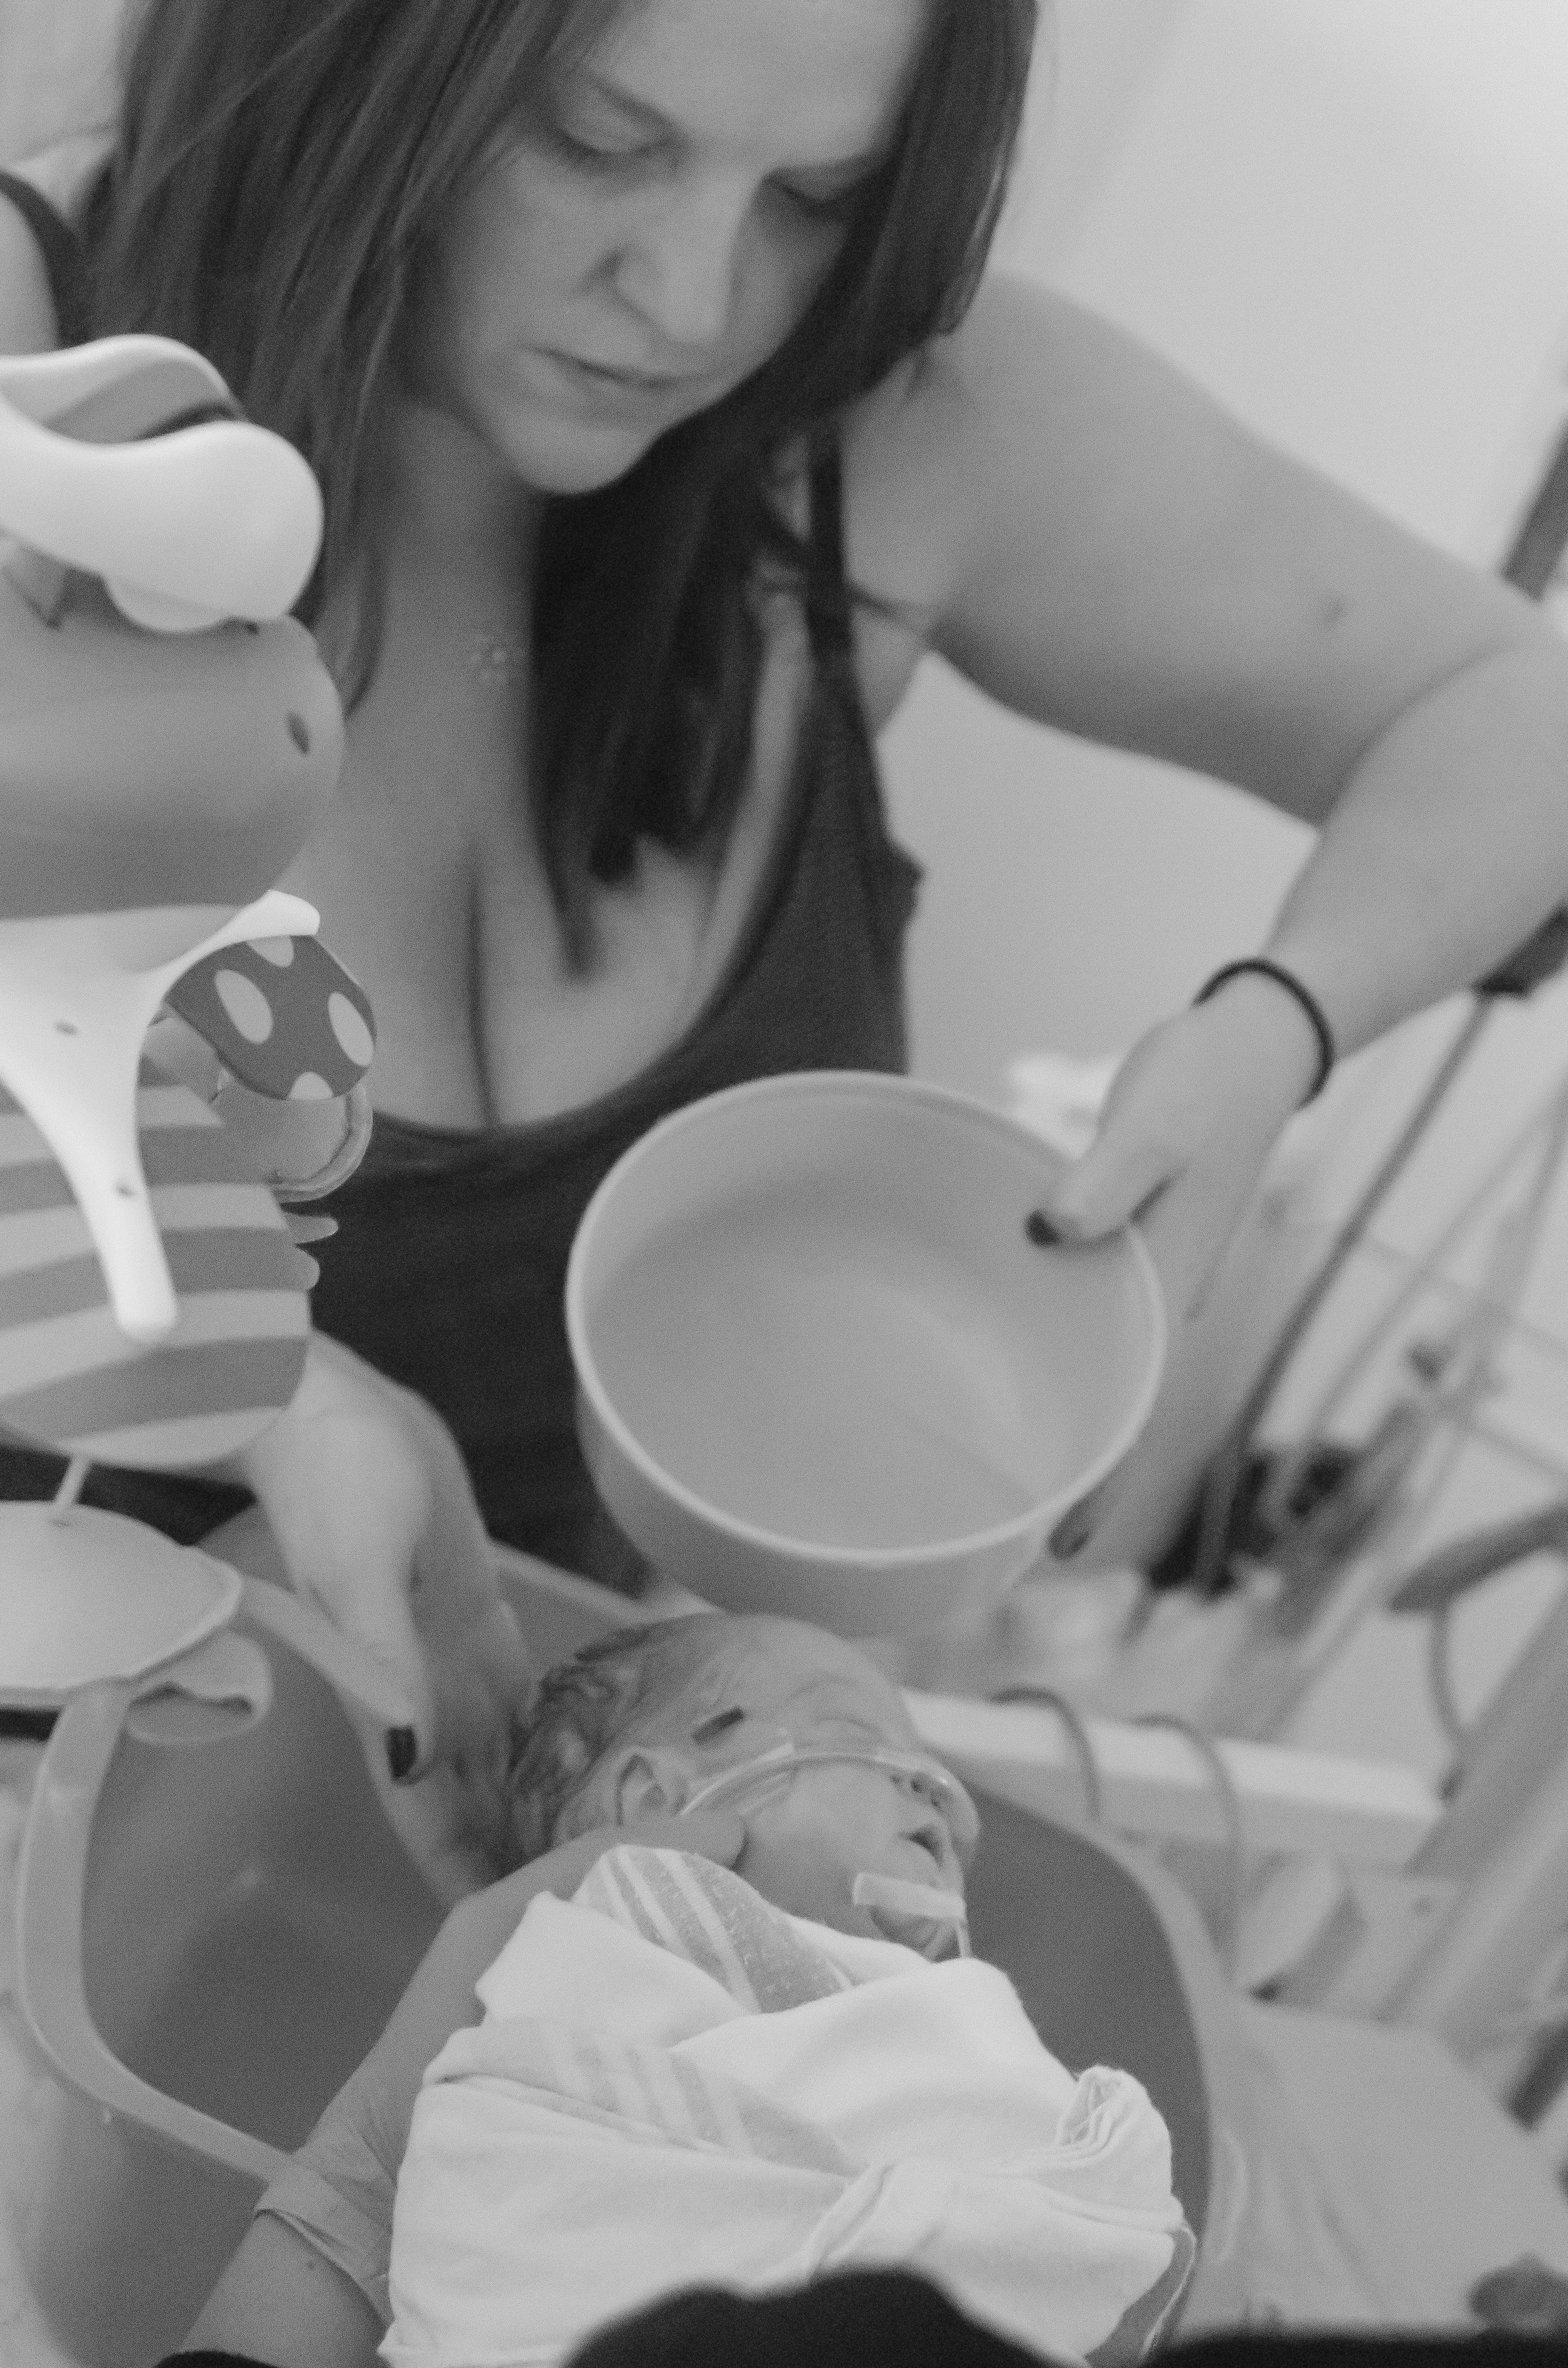 we waited over 3 months before we could bathe her - We do love our bath time. I remember the first time I was able to bathe her, at nearly 3 months old. It seems like a staple to most parents, and although I am sure it was special, it is even more meaningful for a parent of a preemie who had to wait for months to just do this simple task of cleansing their baby. Before then, it was simple sponge baths, done infrequently, so that we did not over stimulate her, mess with the temperature of her body, etc.